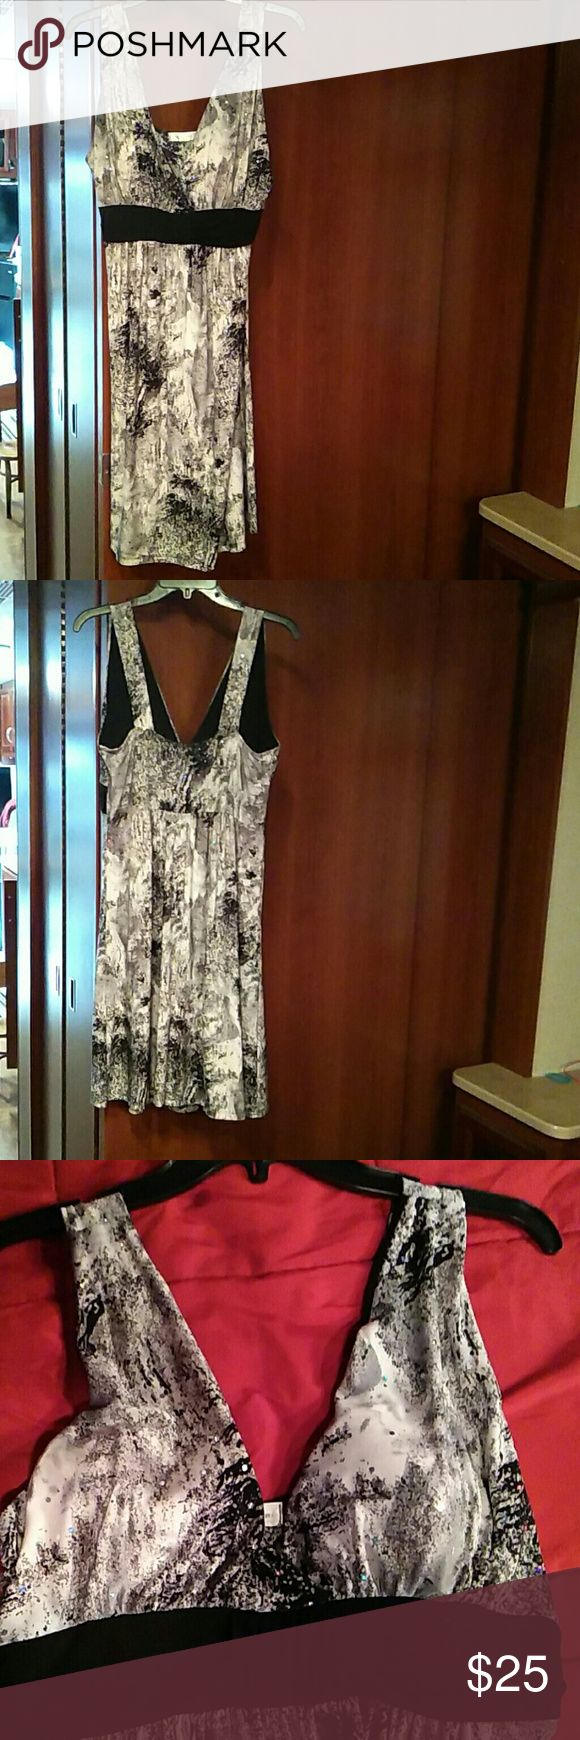 Dana point dress Black and White with iridescent sequins dress. NWOT. Very flowy/stretch. 38.5 in long, 18 in armpit. Dresses